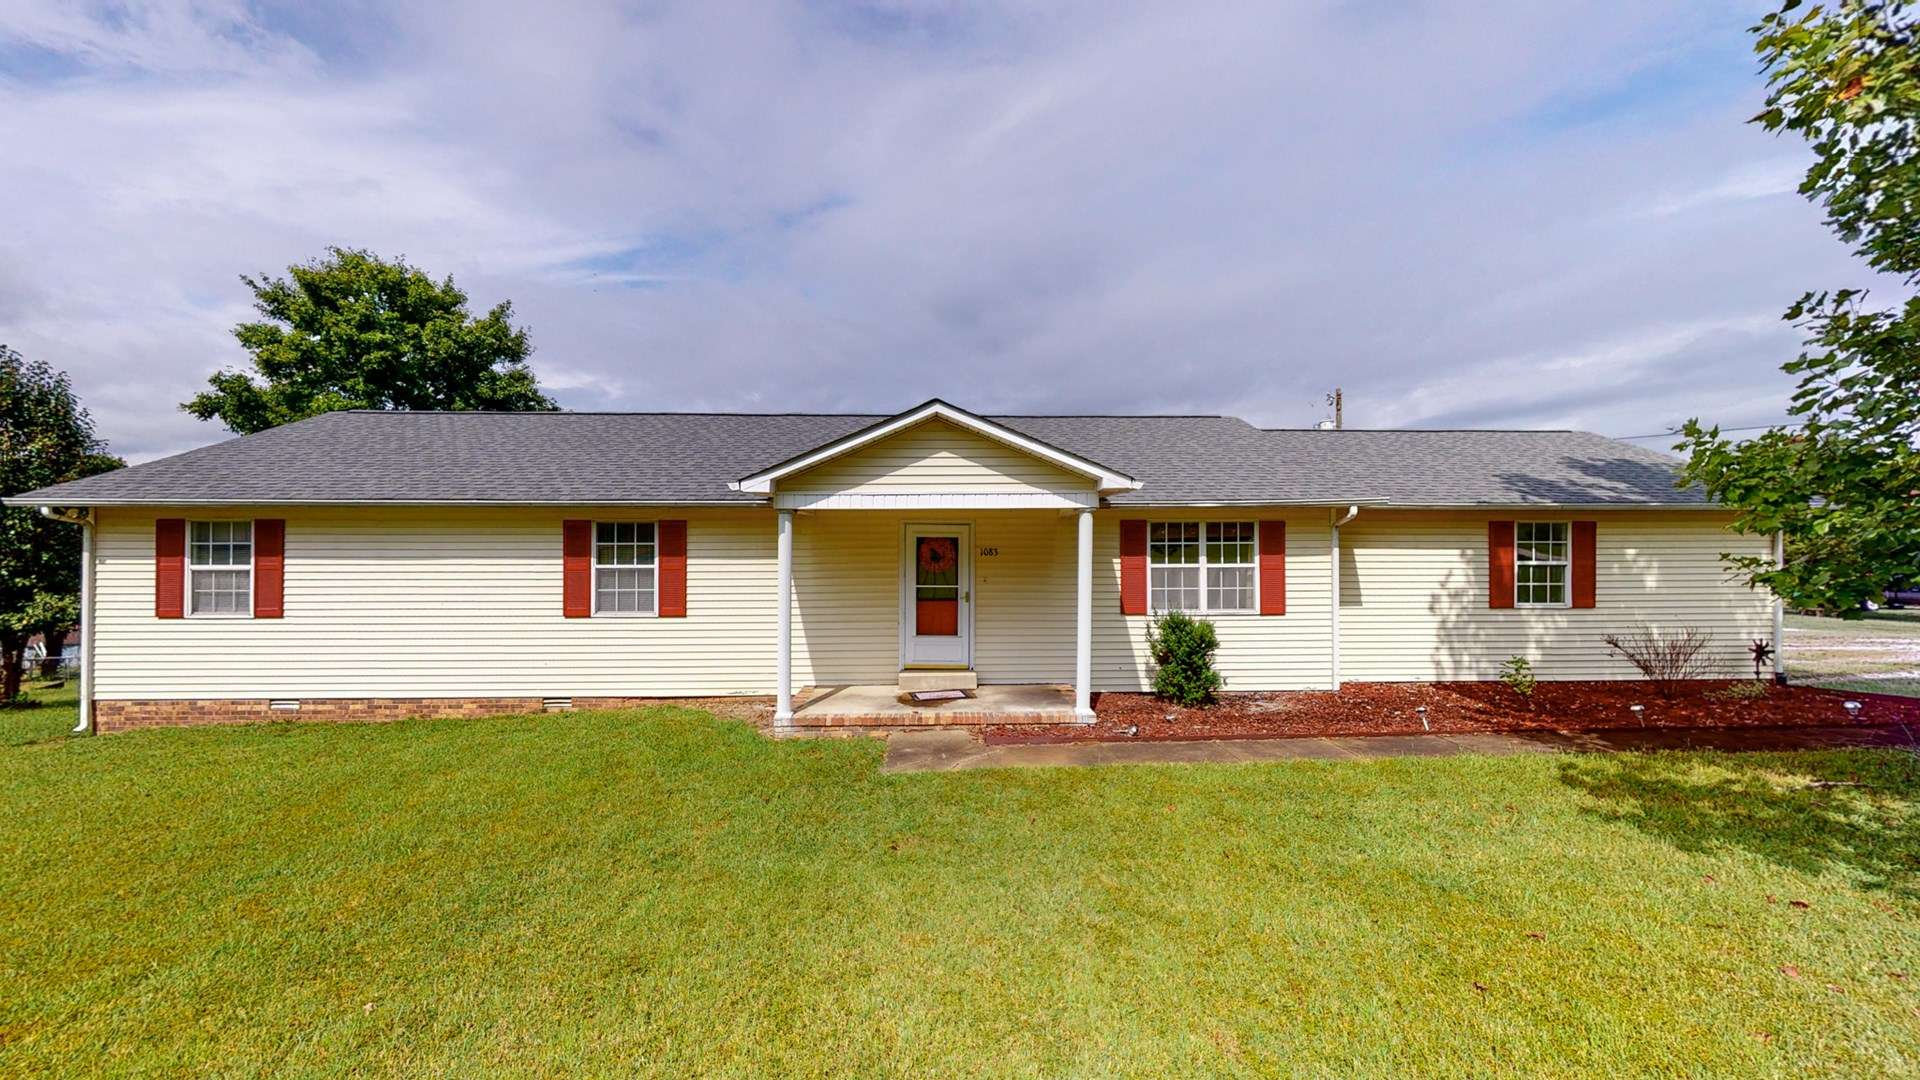 Country Home for Sale on Acre Lot in Maury County, Tennessee